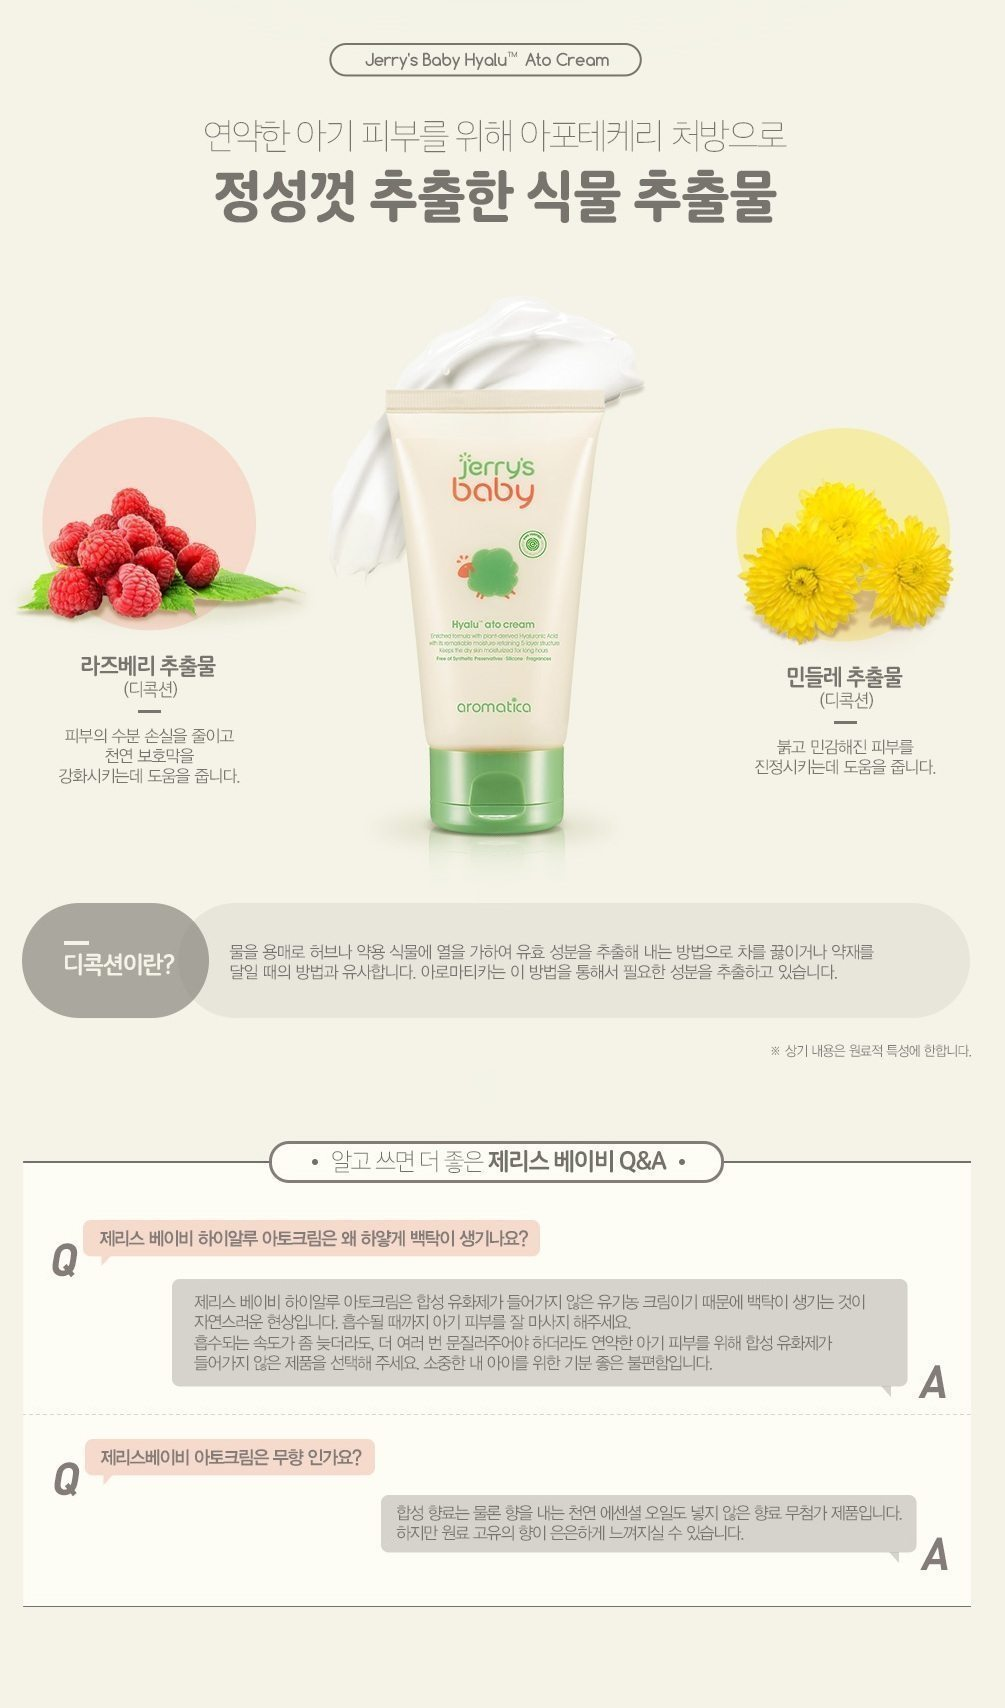 Aromatica Jerry's Baby Hyalu Ato Cream 20 korean baby skincare product online shop malaysia china india1